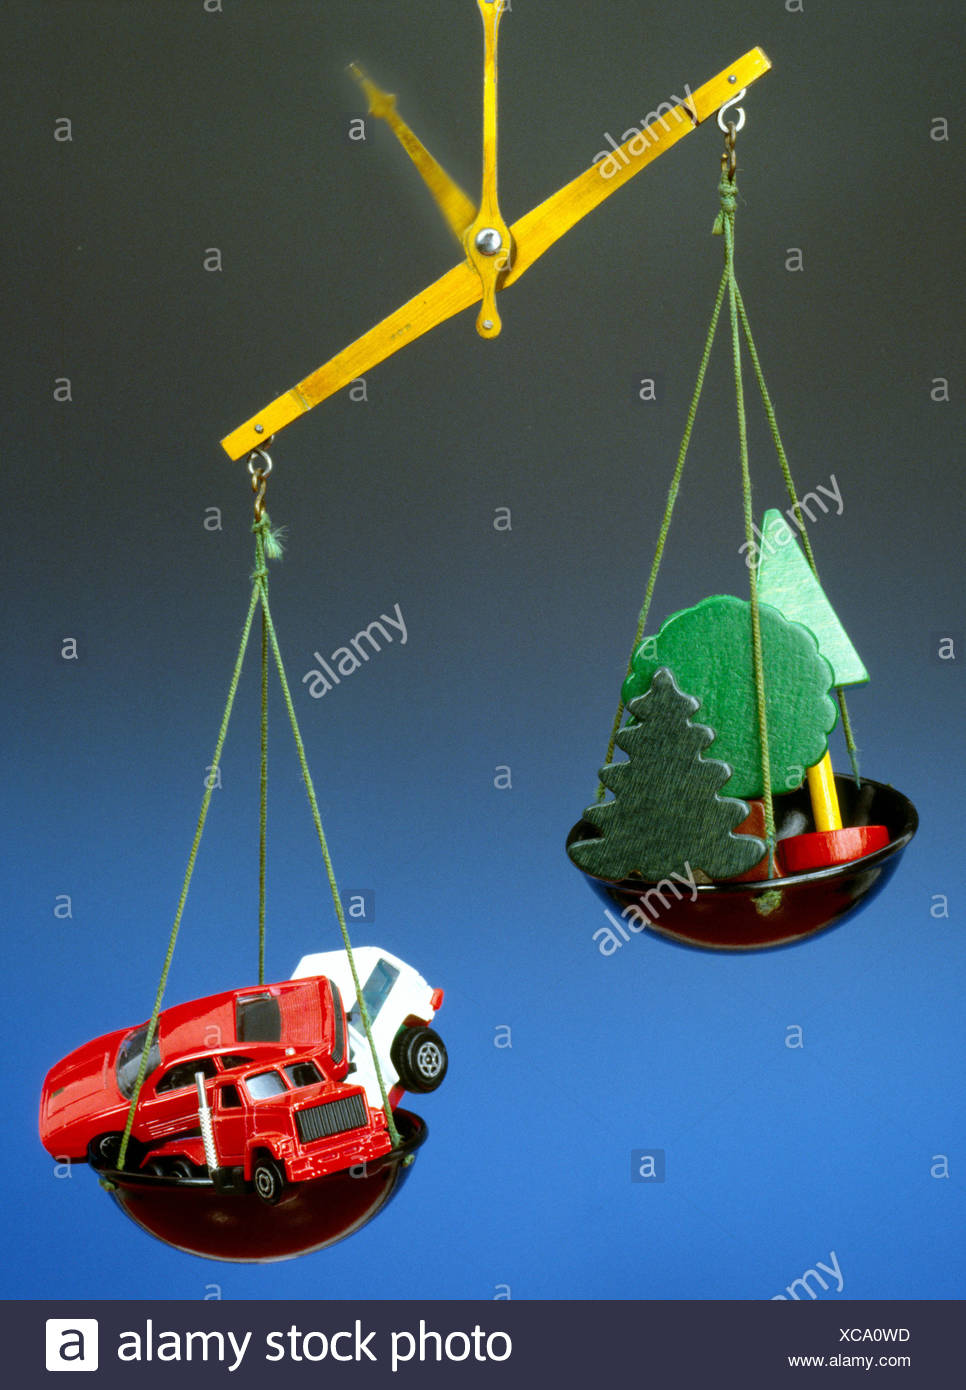 car automobile grass nature plant still life environment environment protection imbalance scales Stock Photo